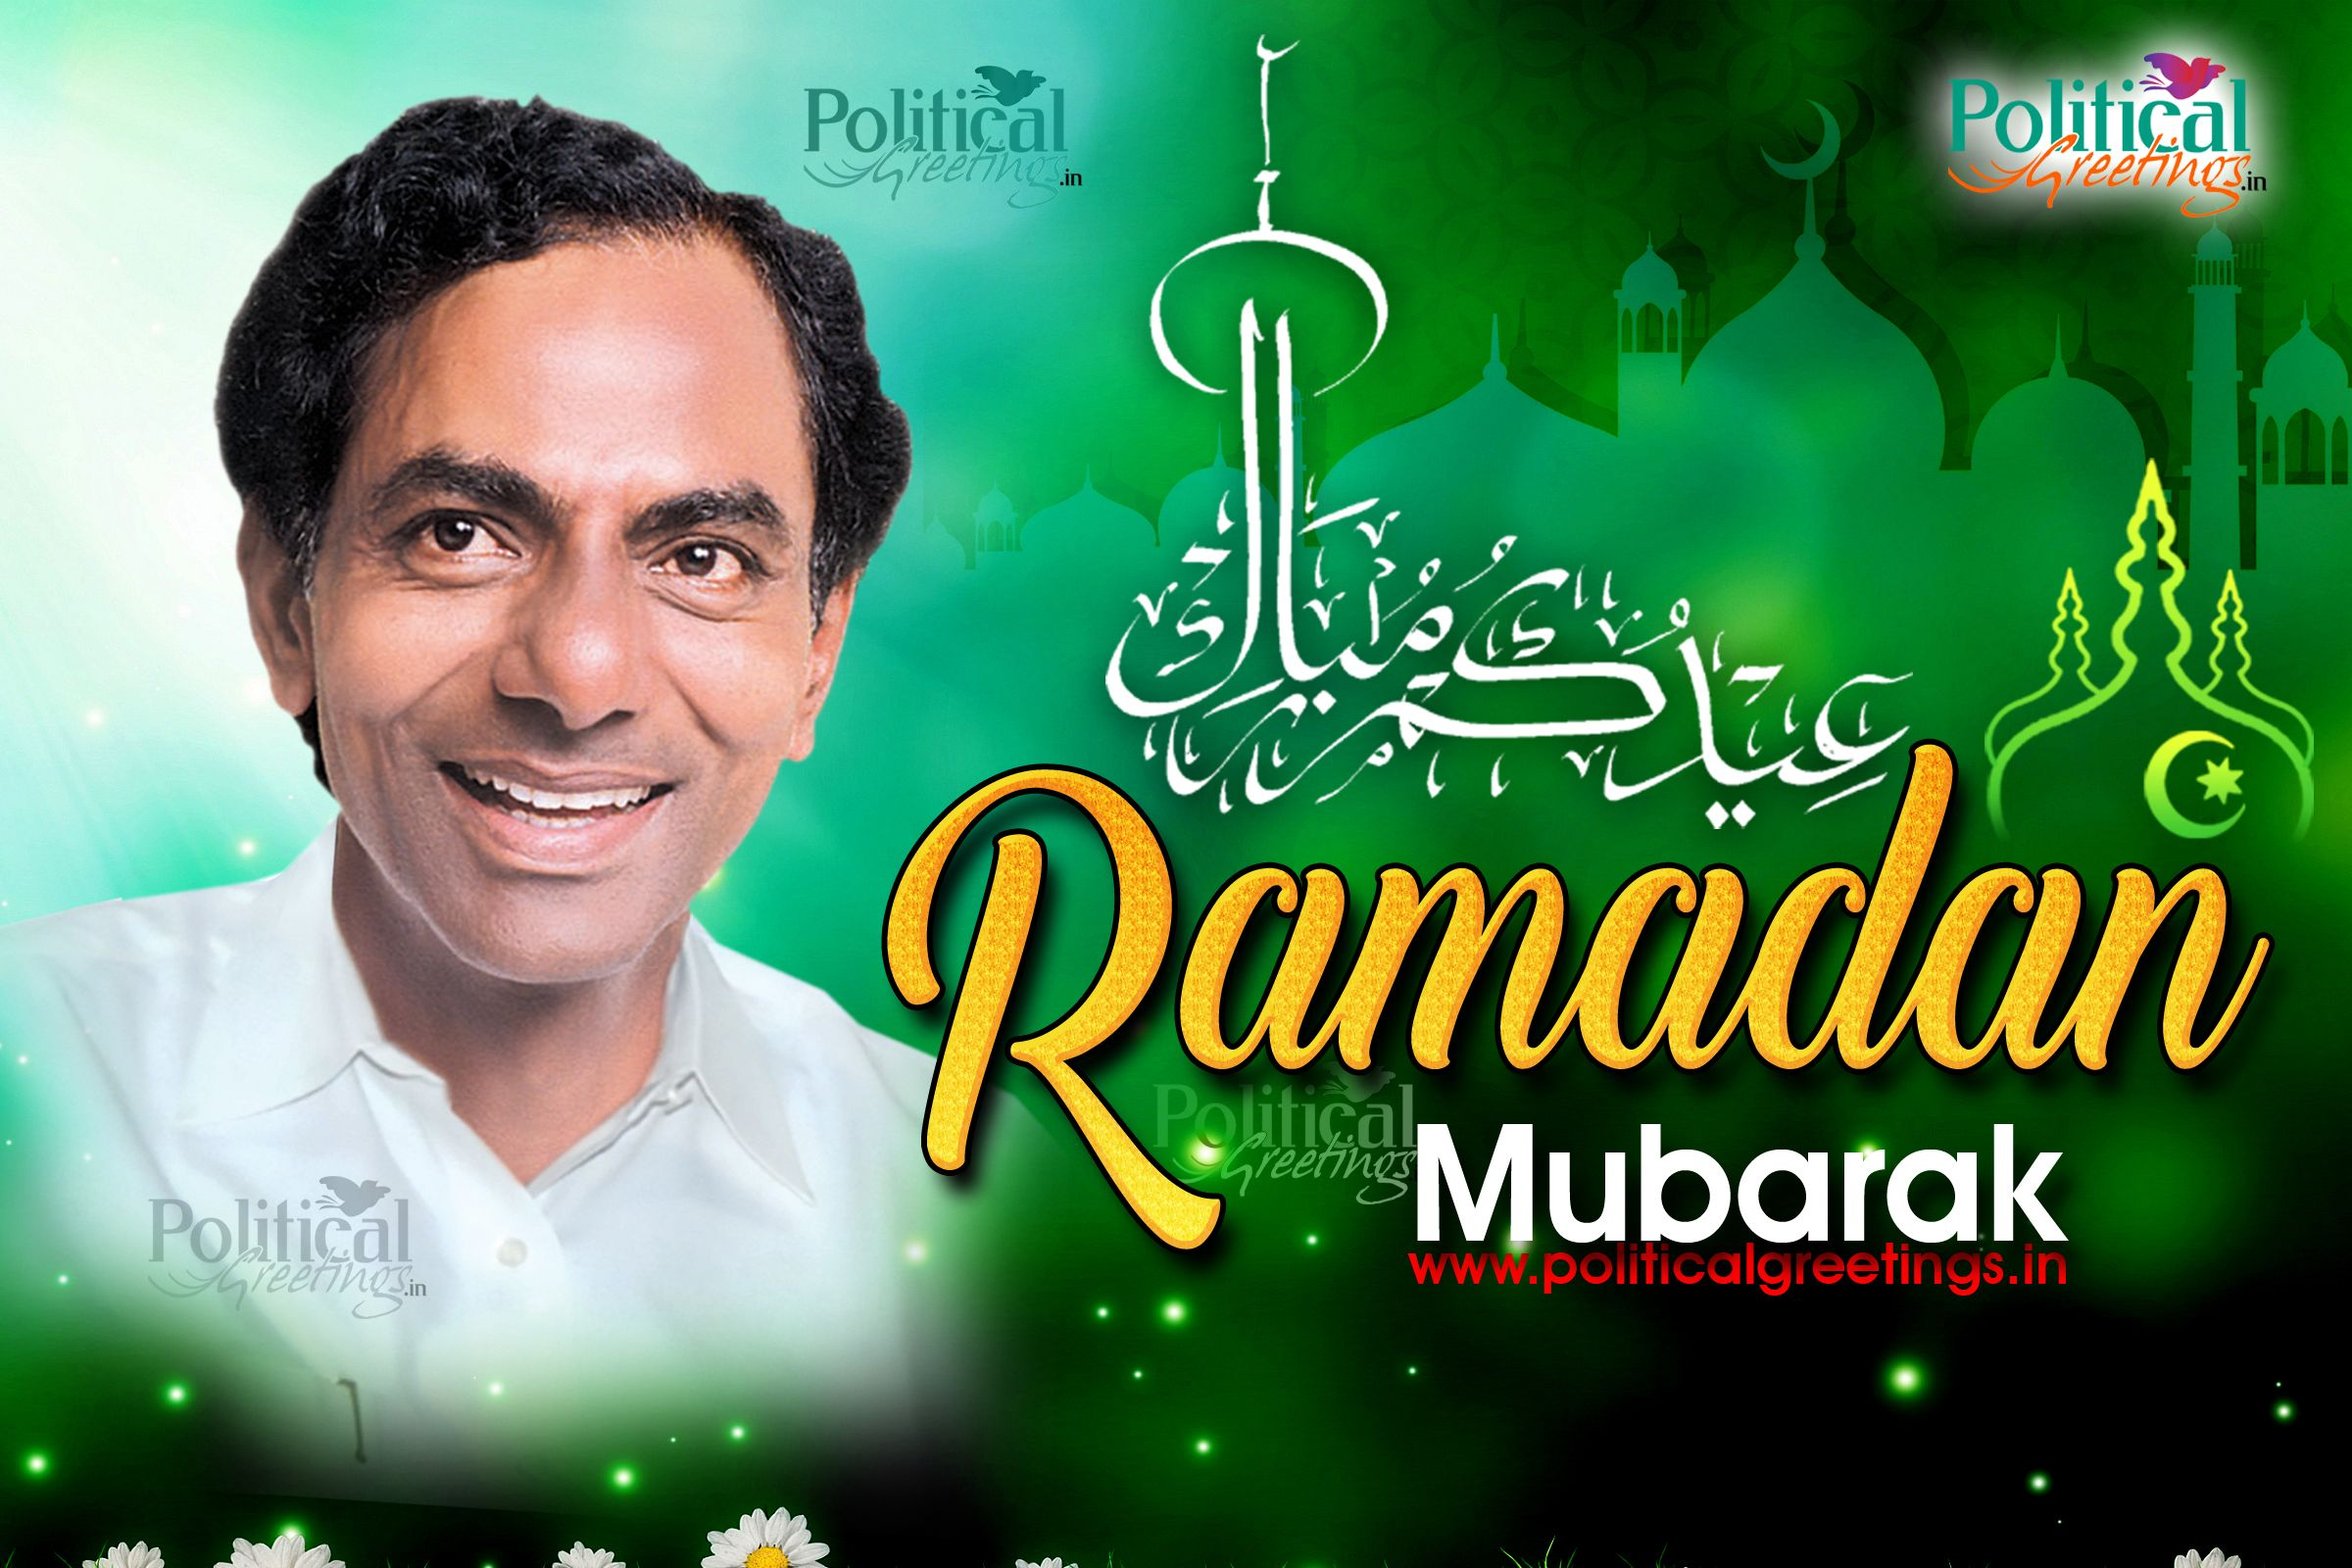 Ramzan Festival Wishes Quotes And Saying Kcr Greetings With Photos